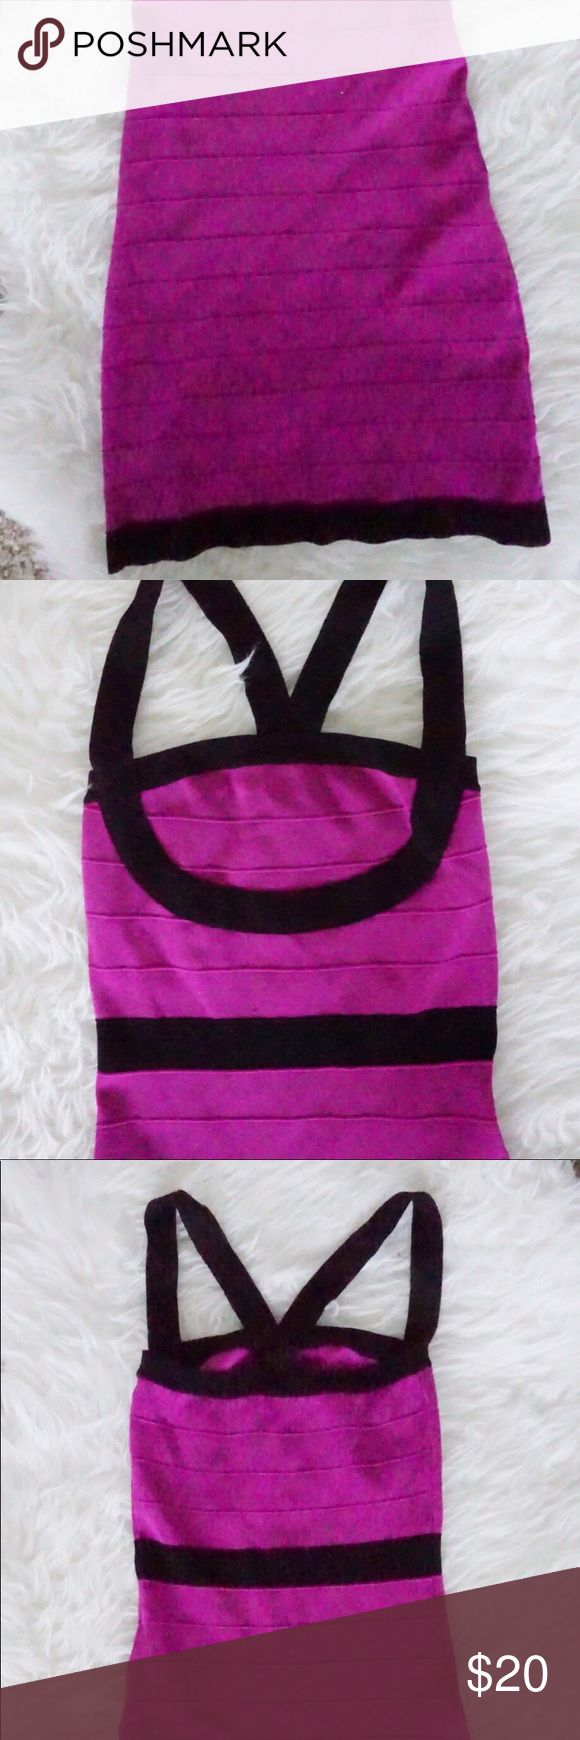 Bandage purple dress Bandage purple dress - perfect for a night out!  Only worn once ❤️ Dresses Mini